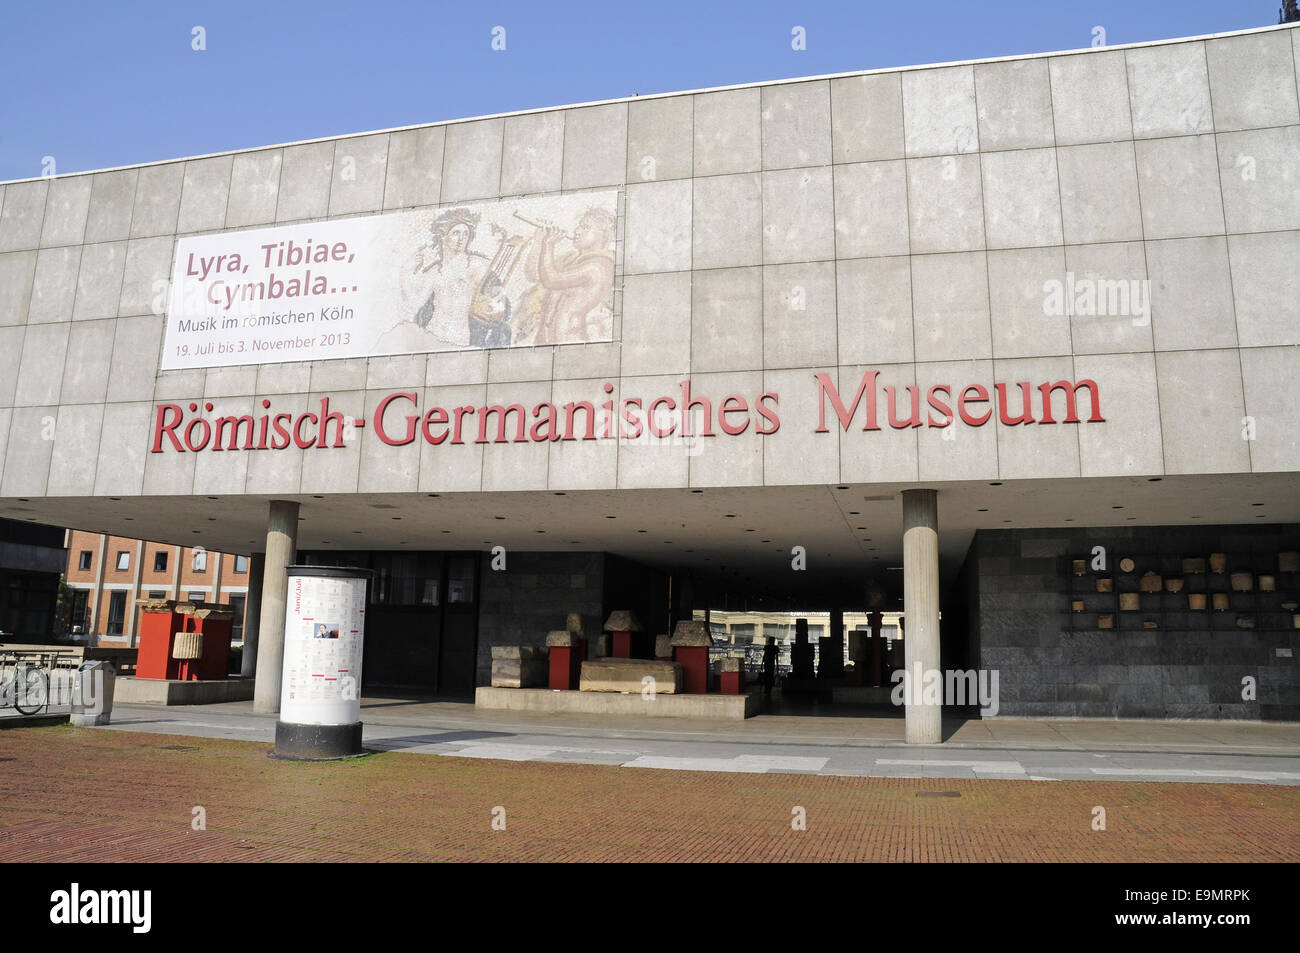 Roman-Germanic Museum, Cologne, Germany Stock Photo